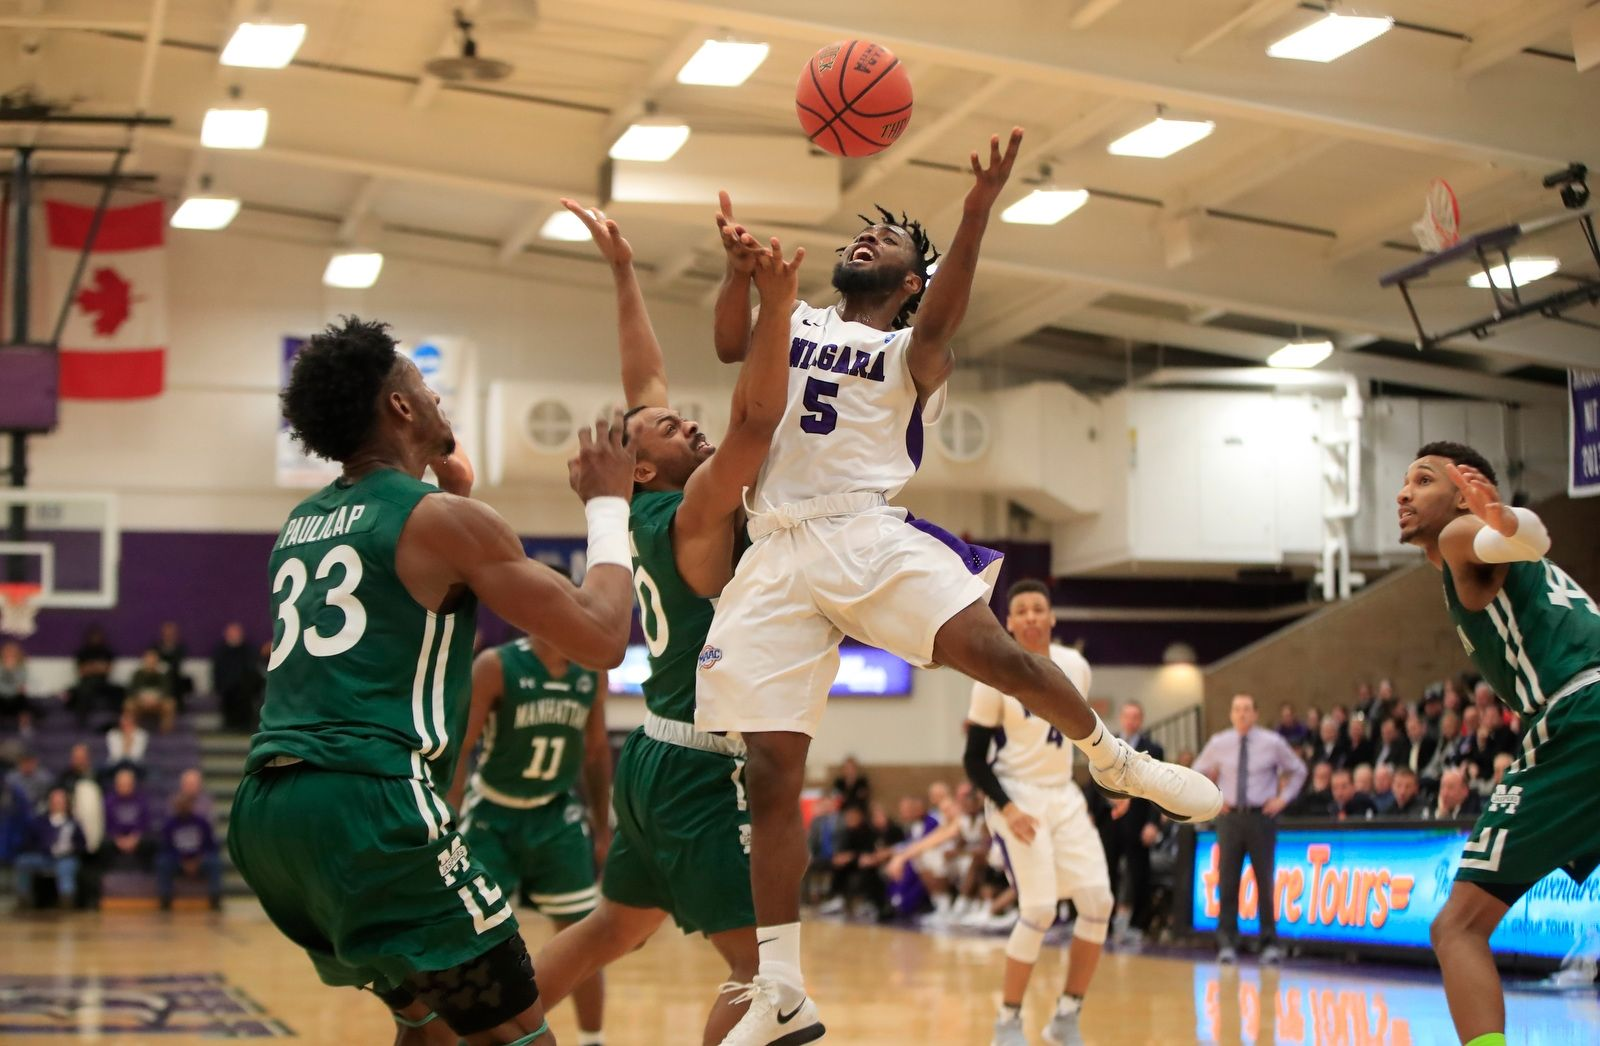 Niagara guard James Towns loses the ball against Manhattan during first half action at the Gallagher center on Wednesday, Jan. 24, 2018.